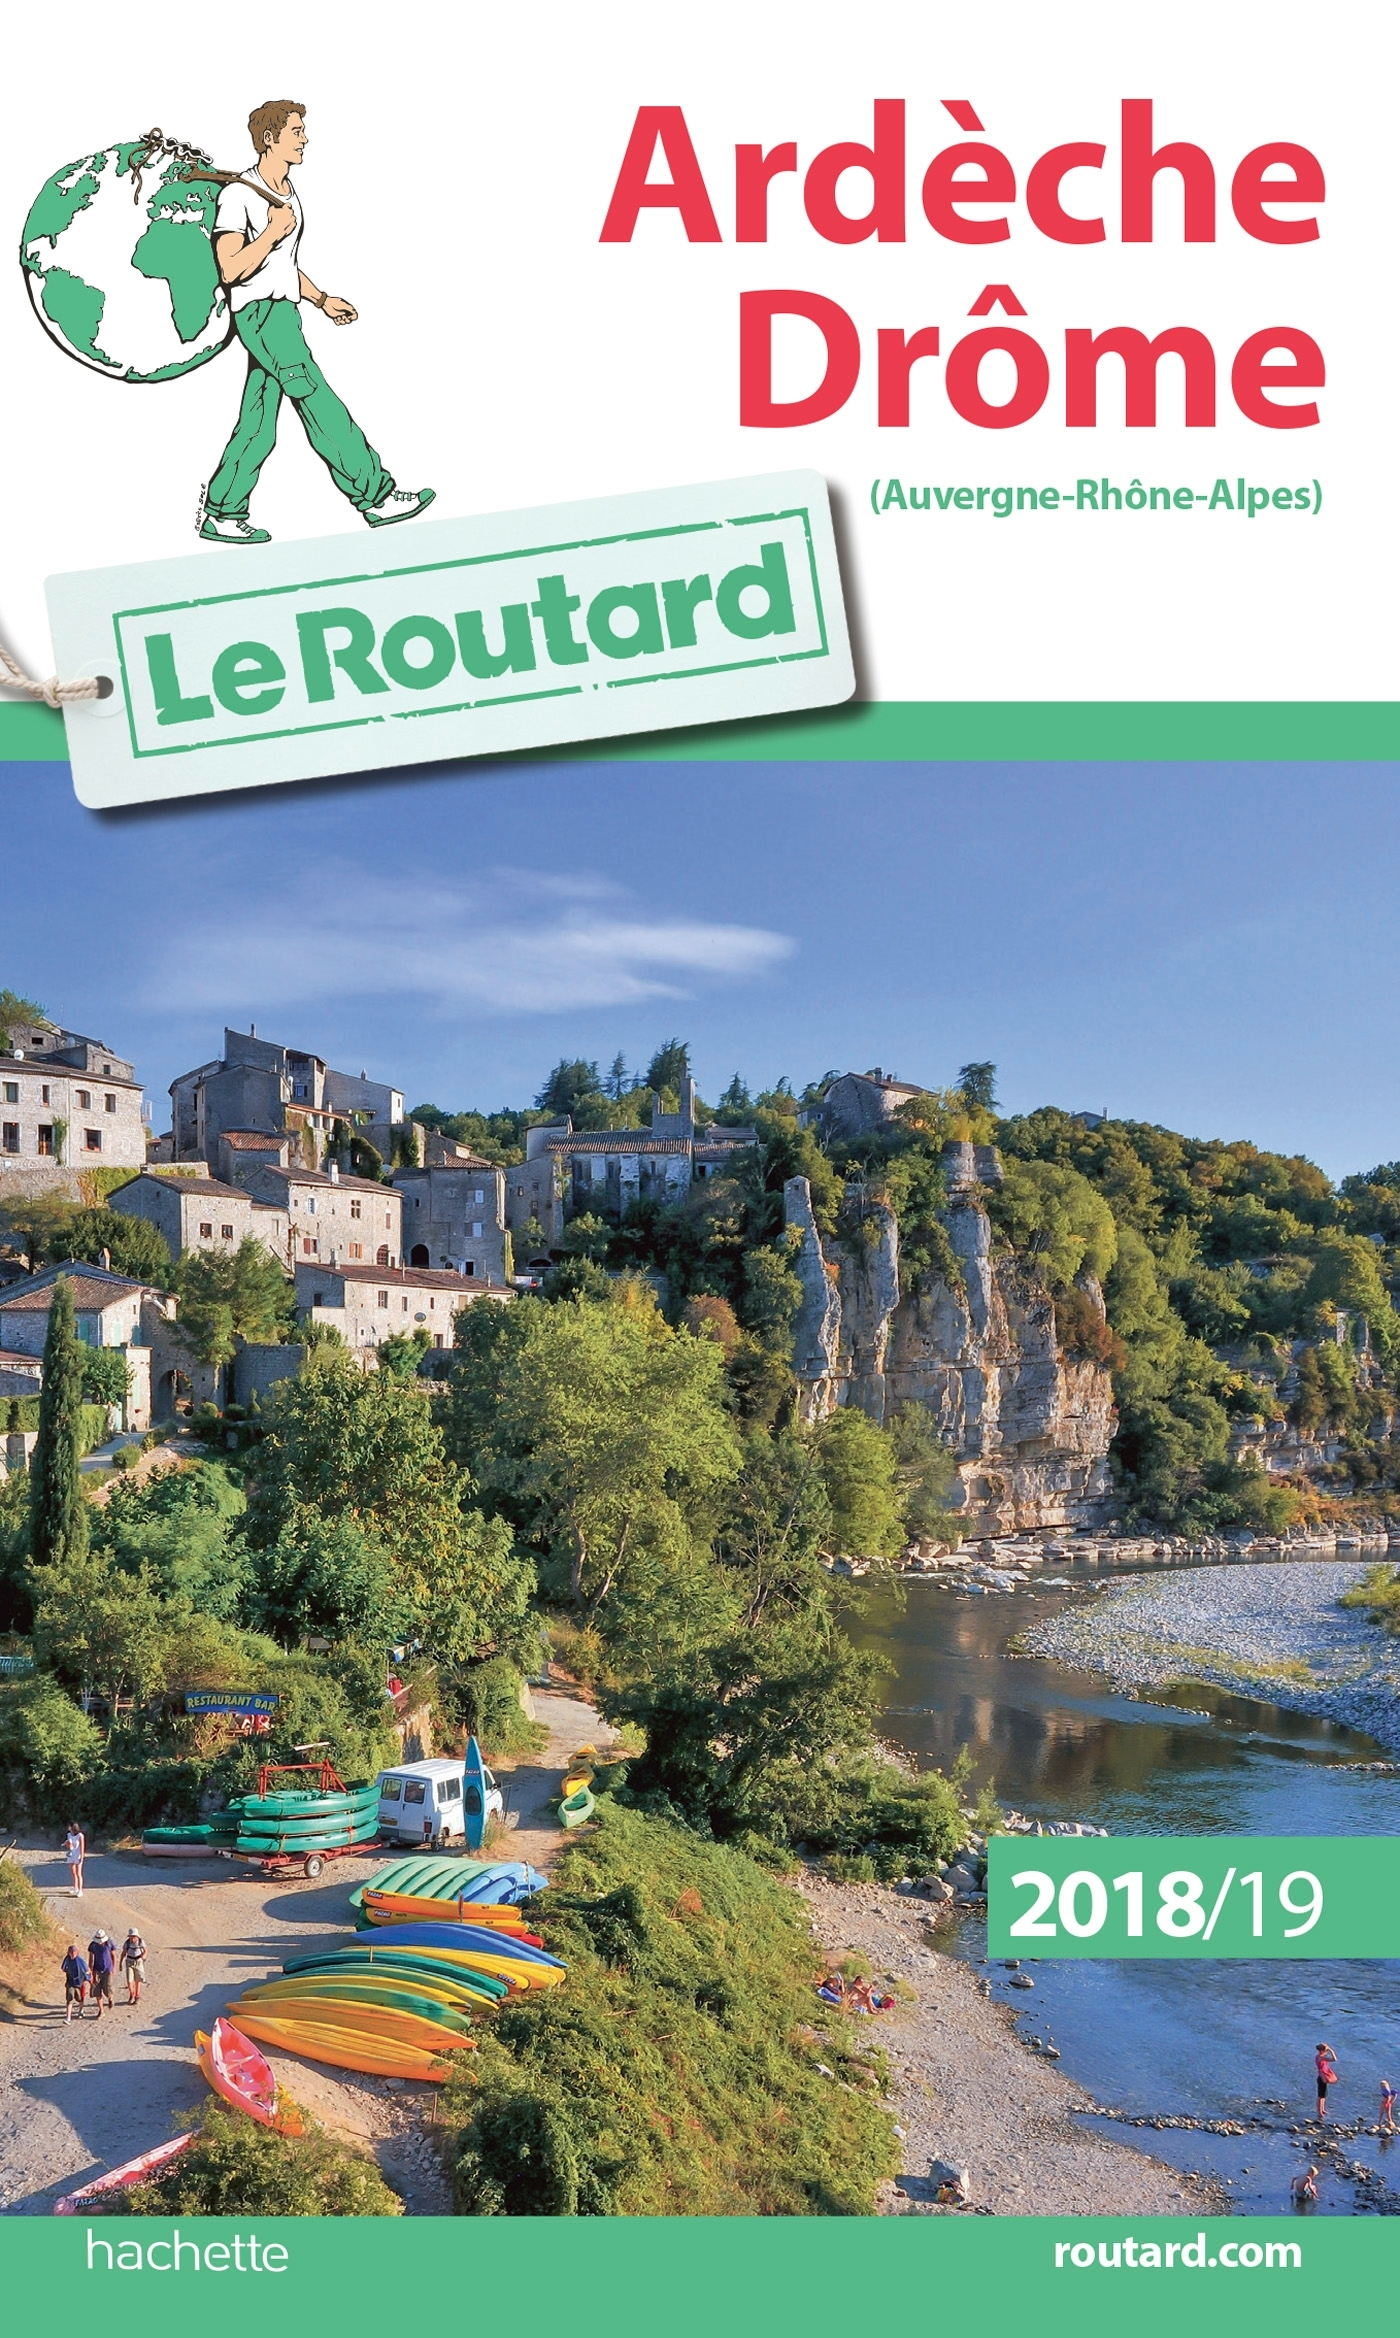 GUIDE DU ROUTARD ARDECHE DROME 2018/19